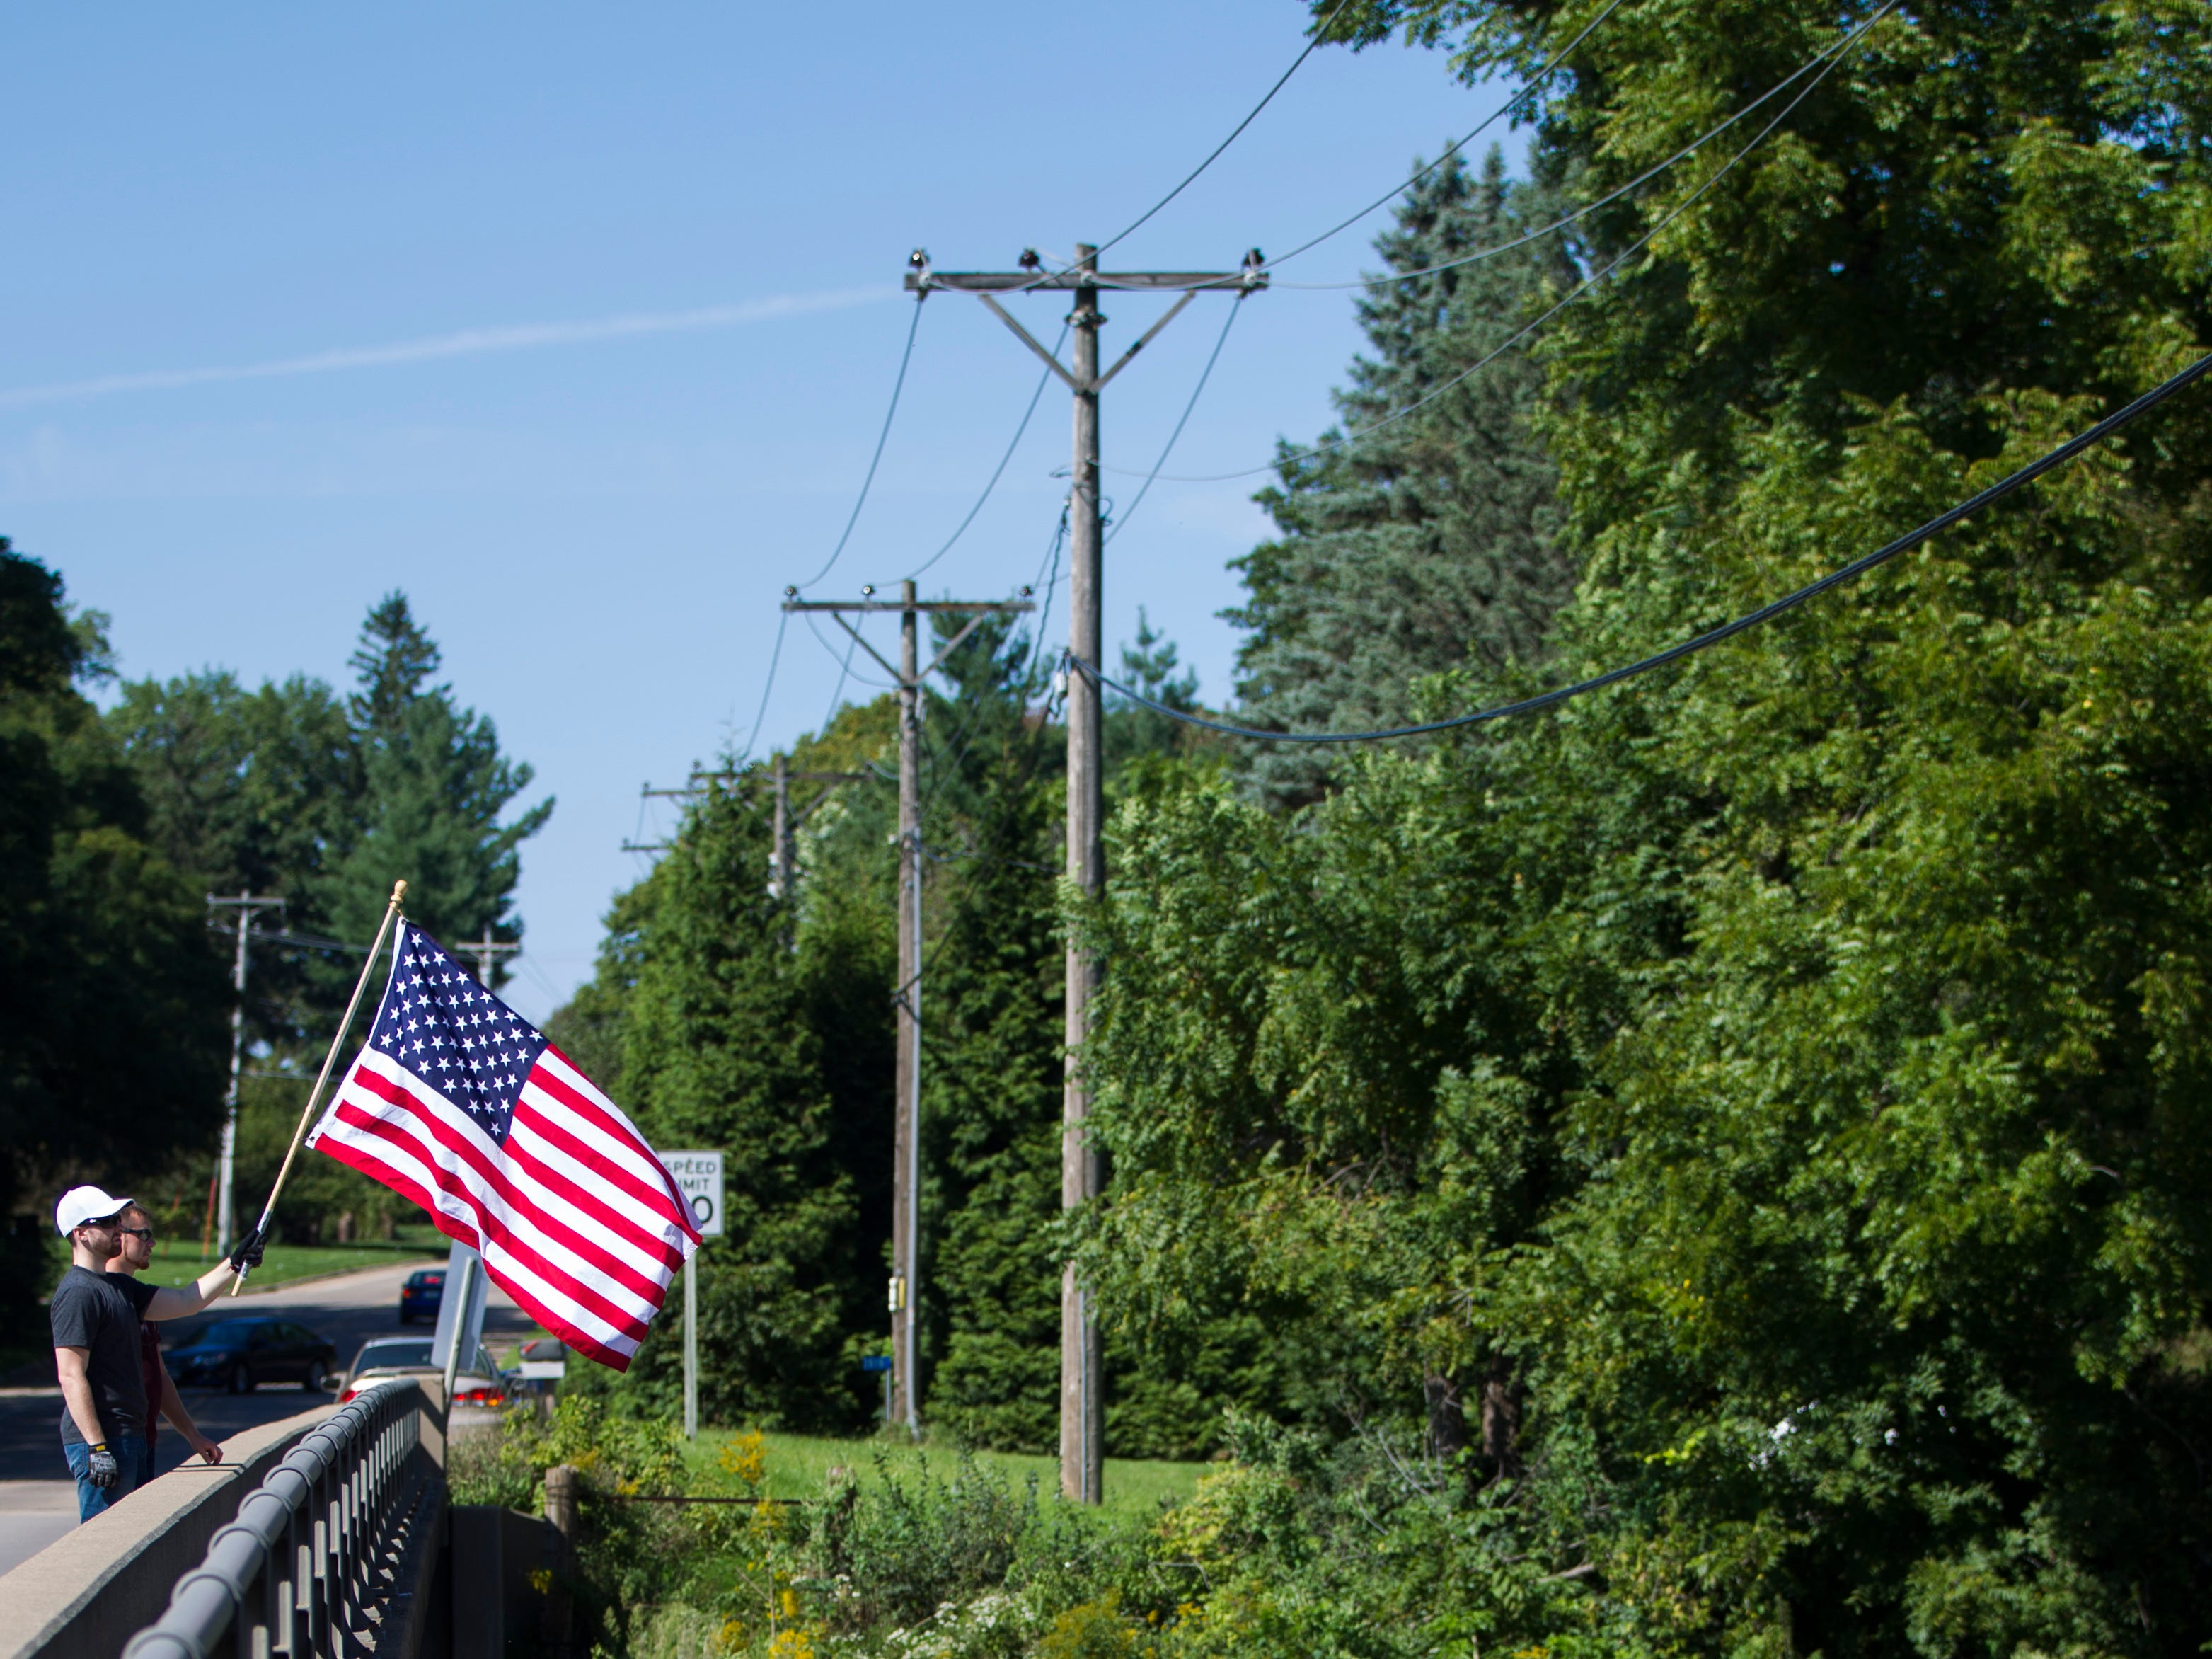 Two men wave an American flag on Tuesday, Sept. 11, 2018, on Prairie Du Chien Road over Interstate 80 in Iowa City while passersby honk their horns in support.